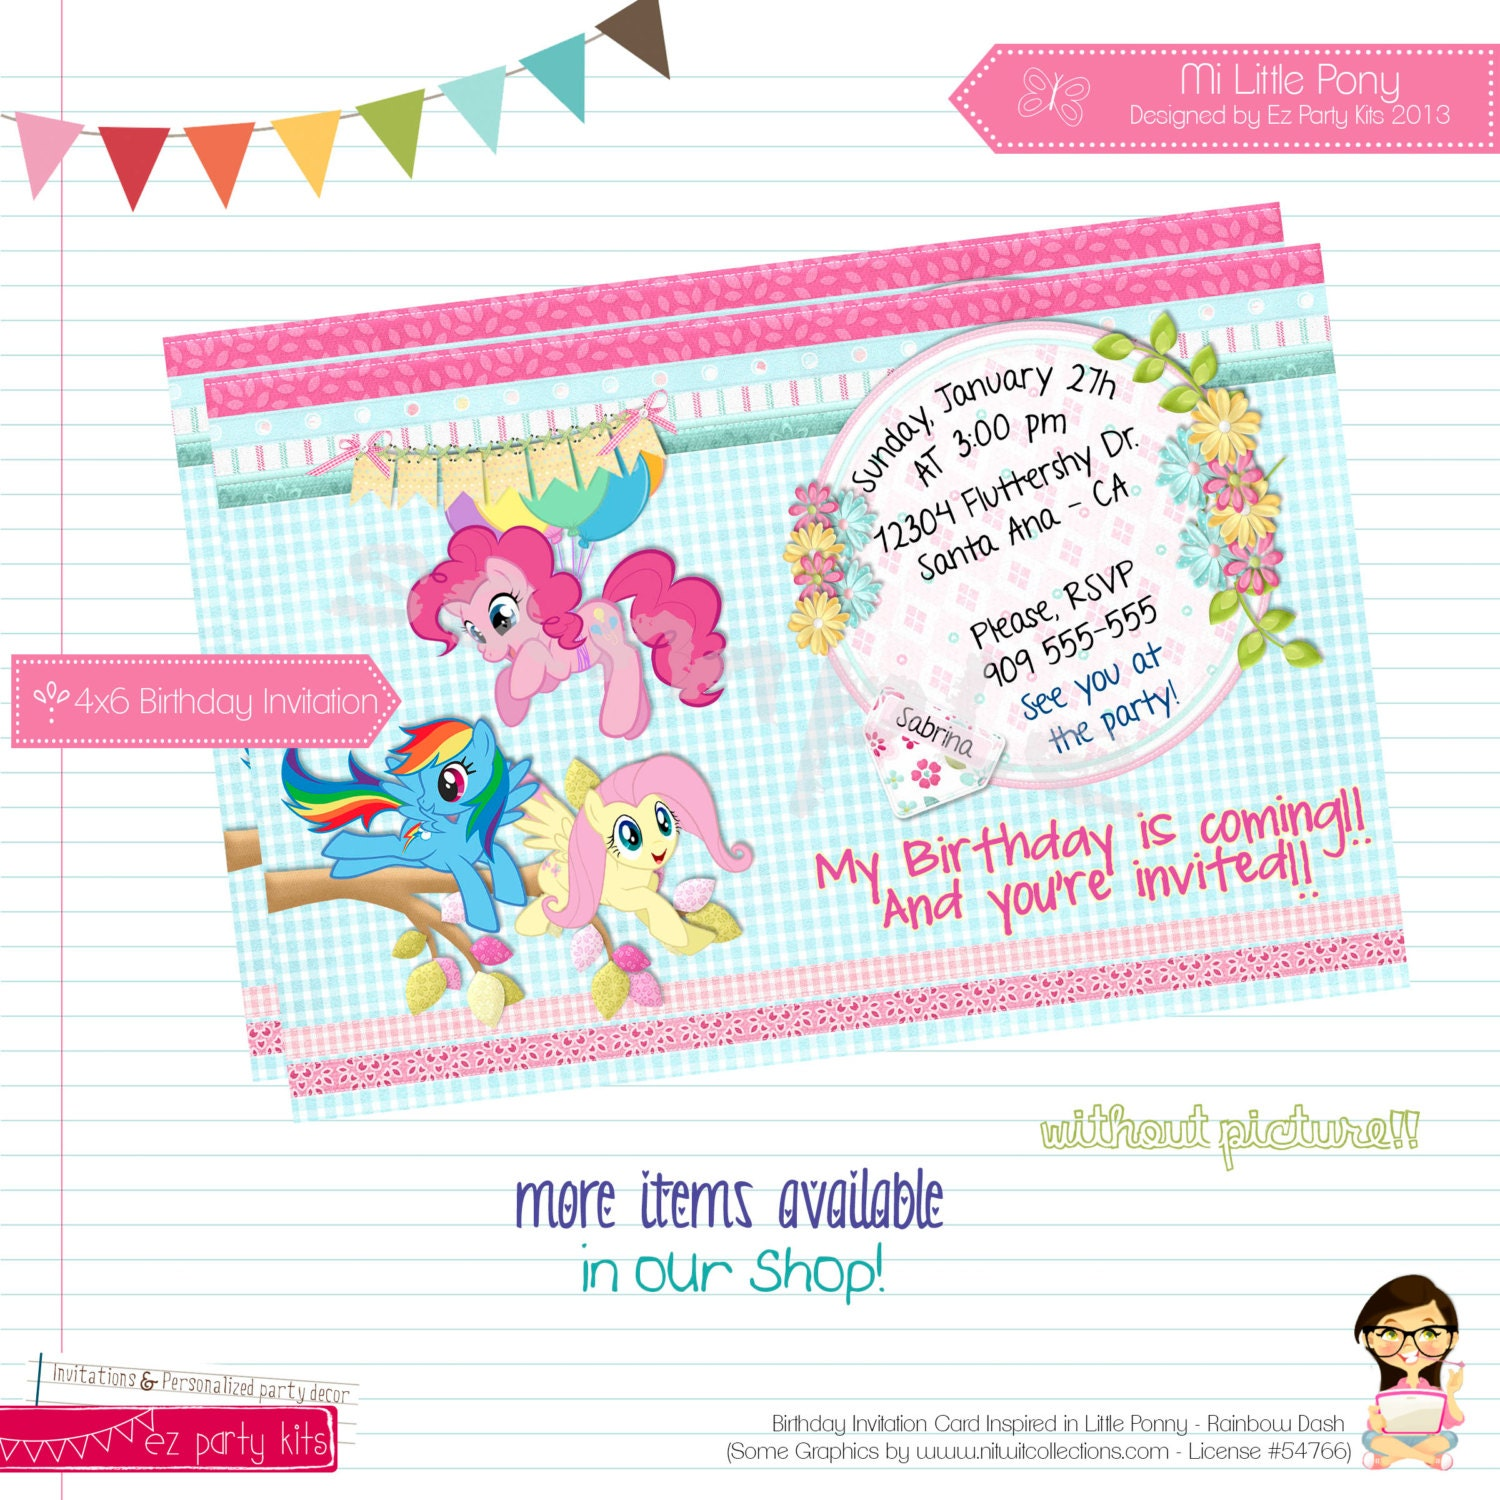 My Little Pony Photo Invitations with good invitation sample